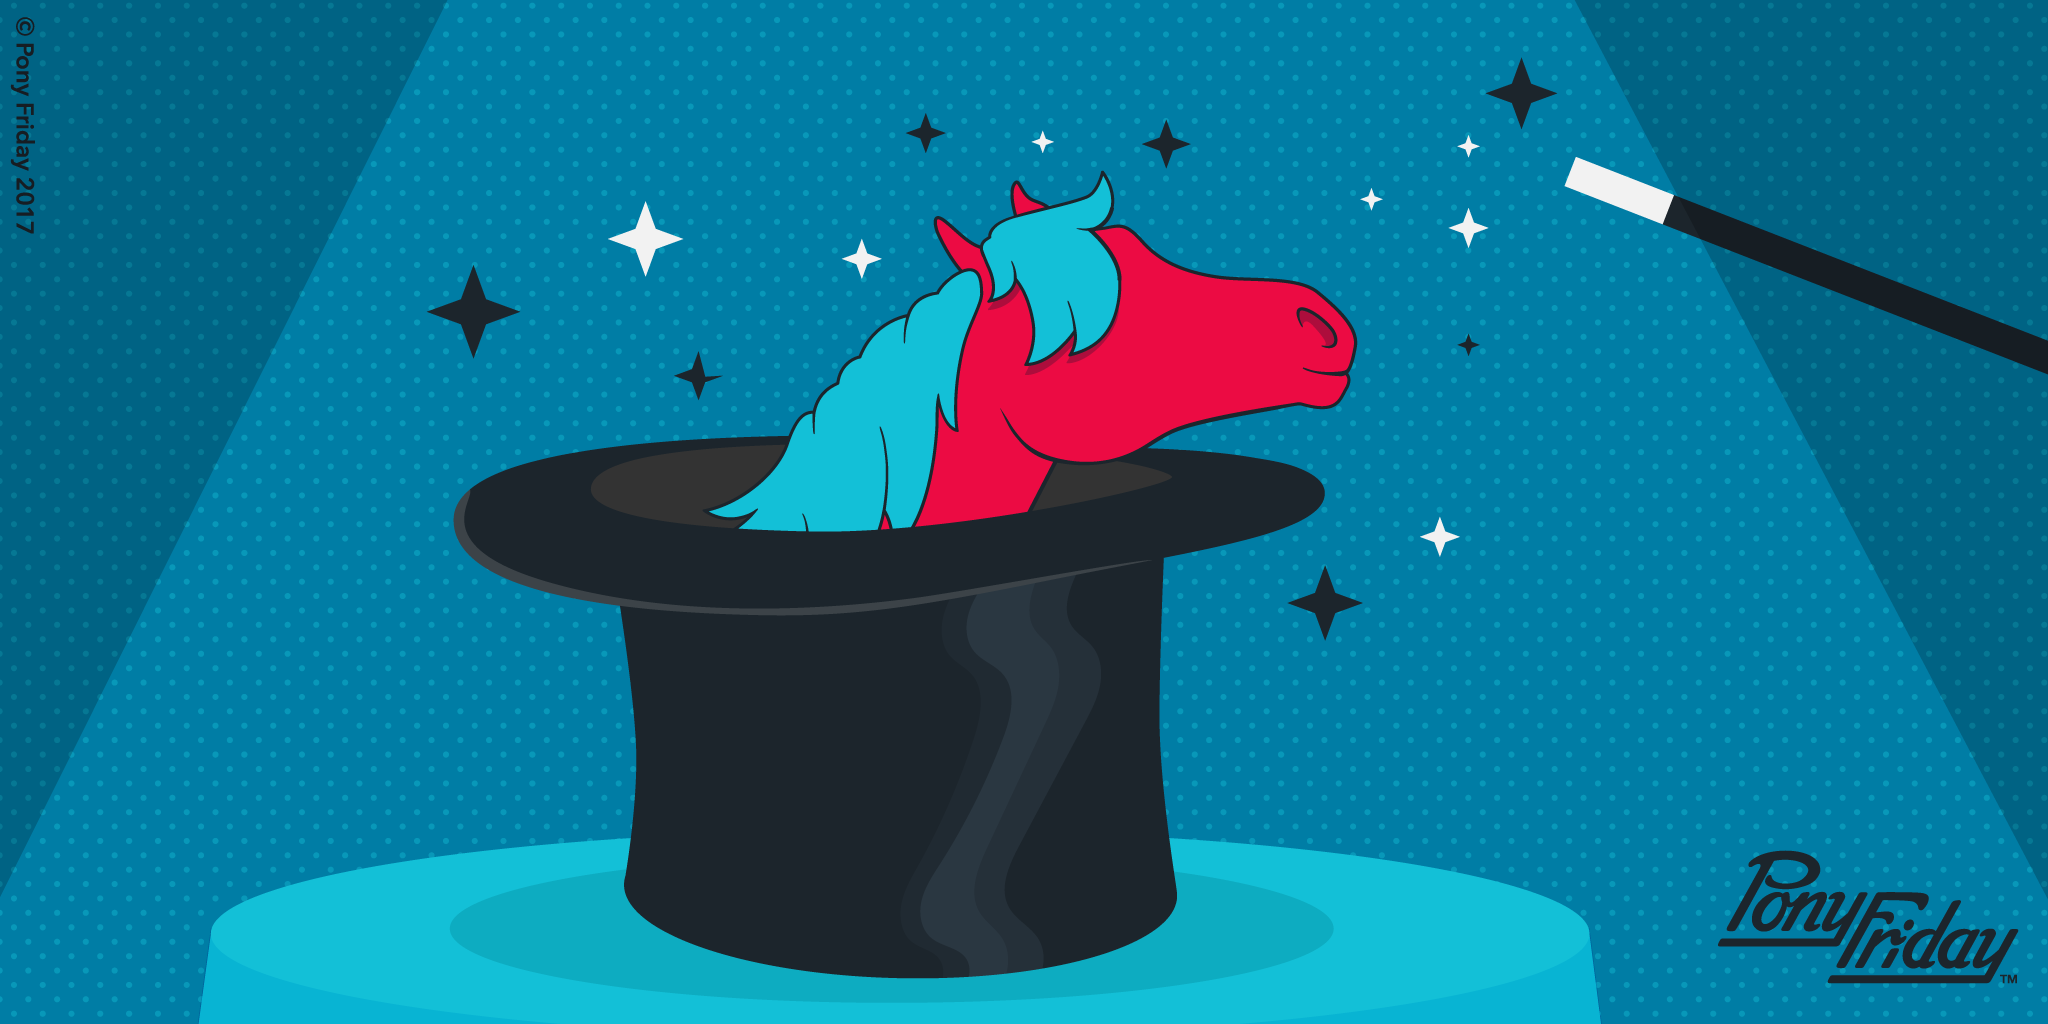 Pony-Friday-Magic-Hat-Not-A-Bunny-Wand-Horse-Trick-Blog-Post-Header-Image.png